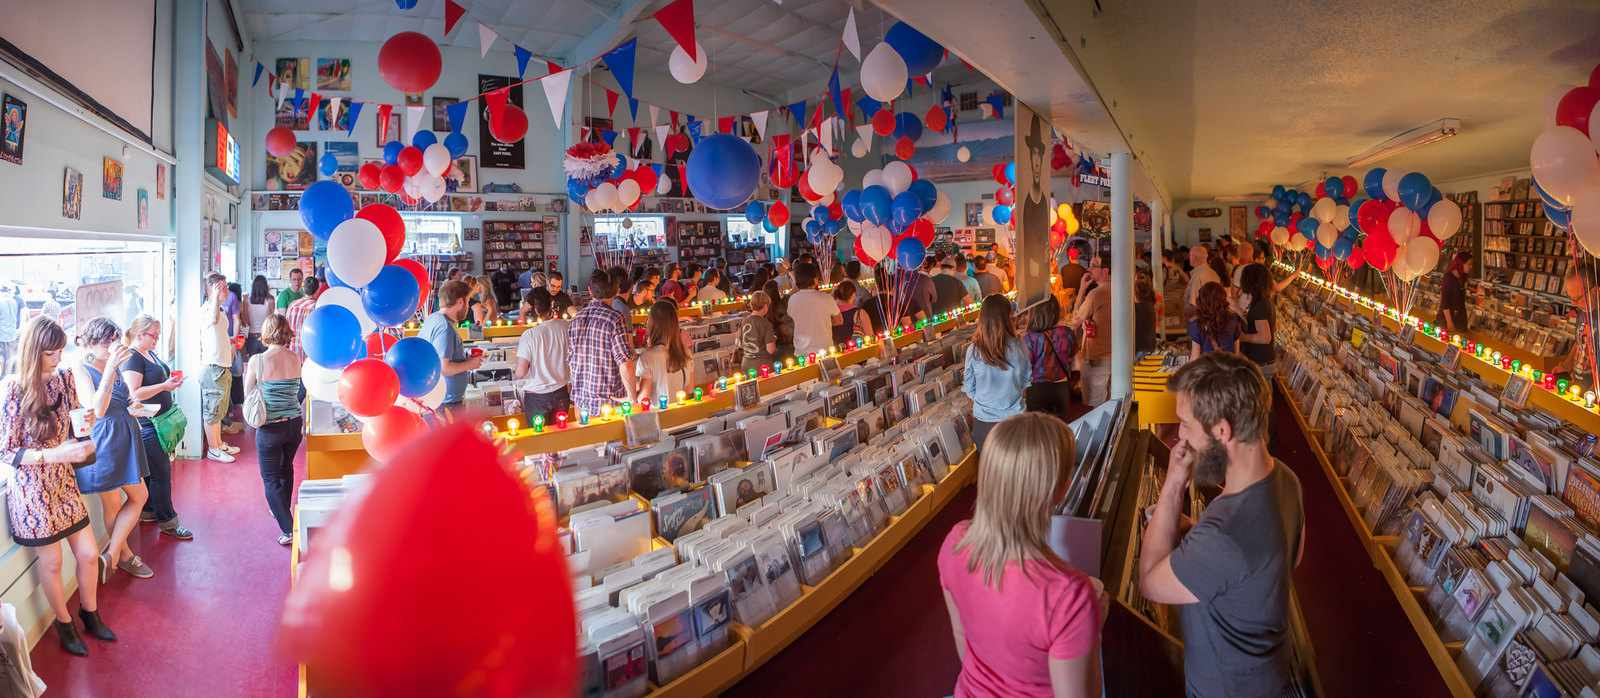 A record store filled with people, decorated with red, white and blue balloons and twinkling lights